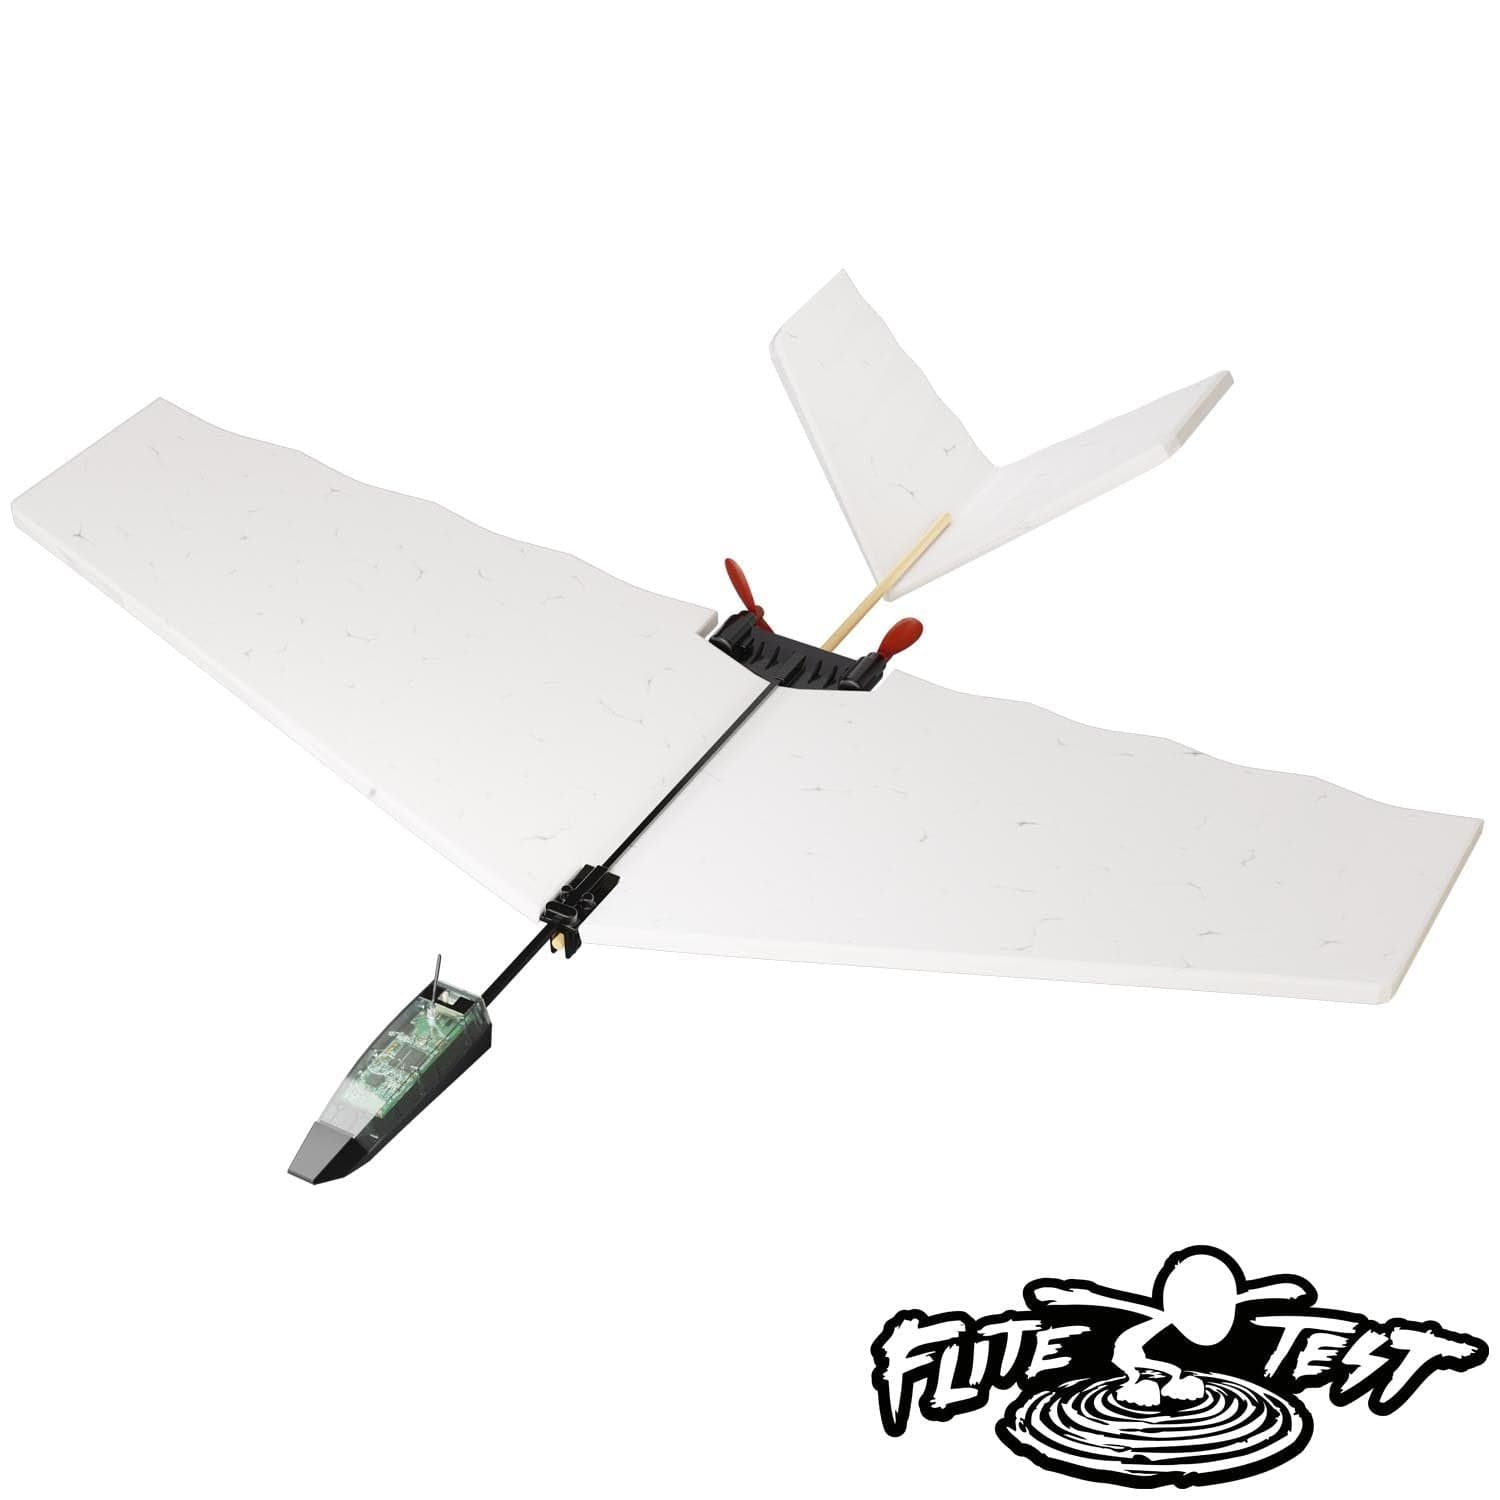 EZ Streak Foam Airplane Kit